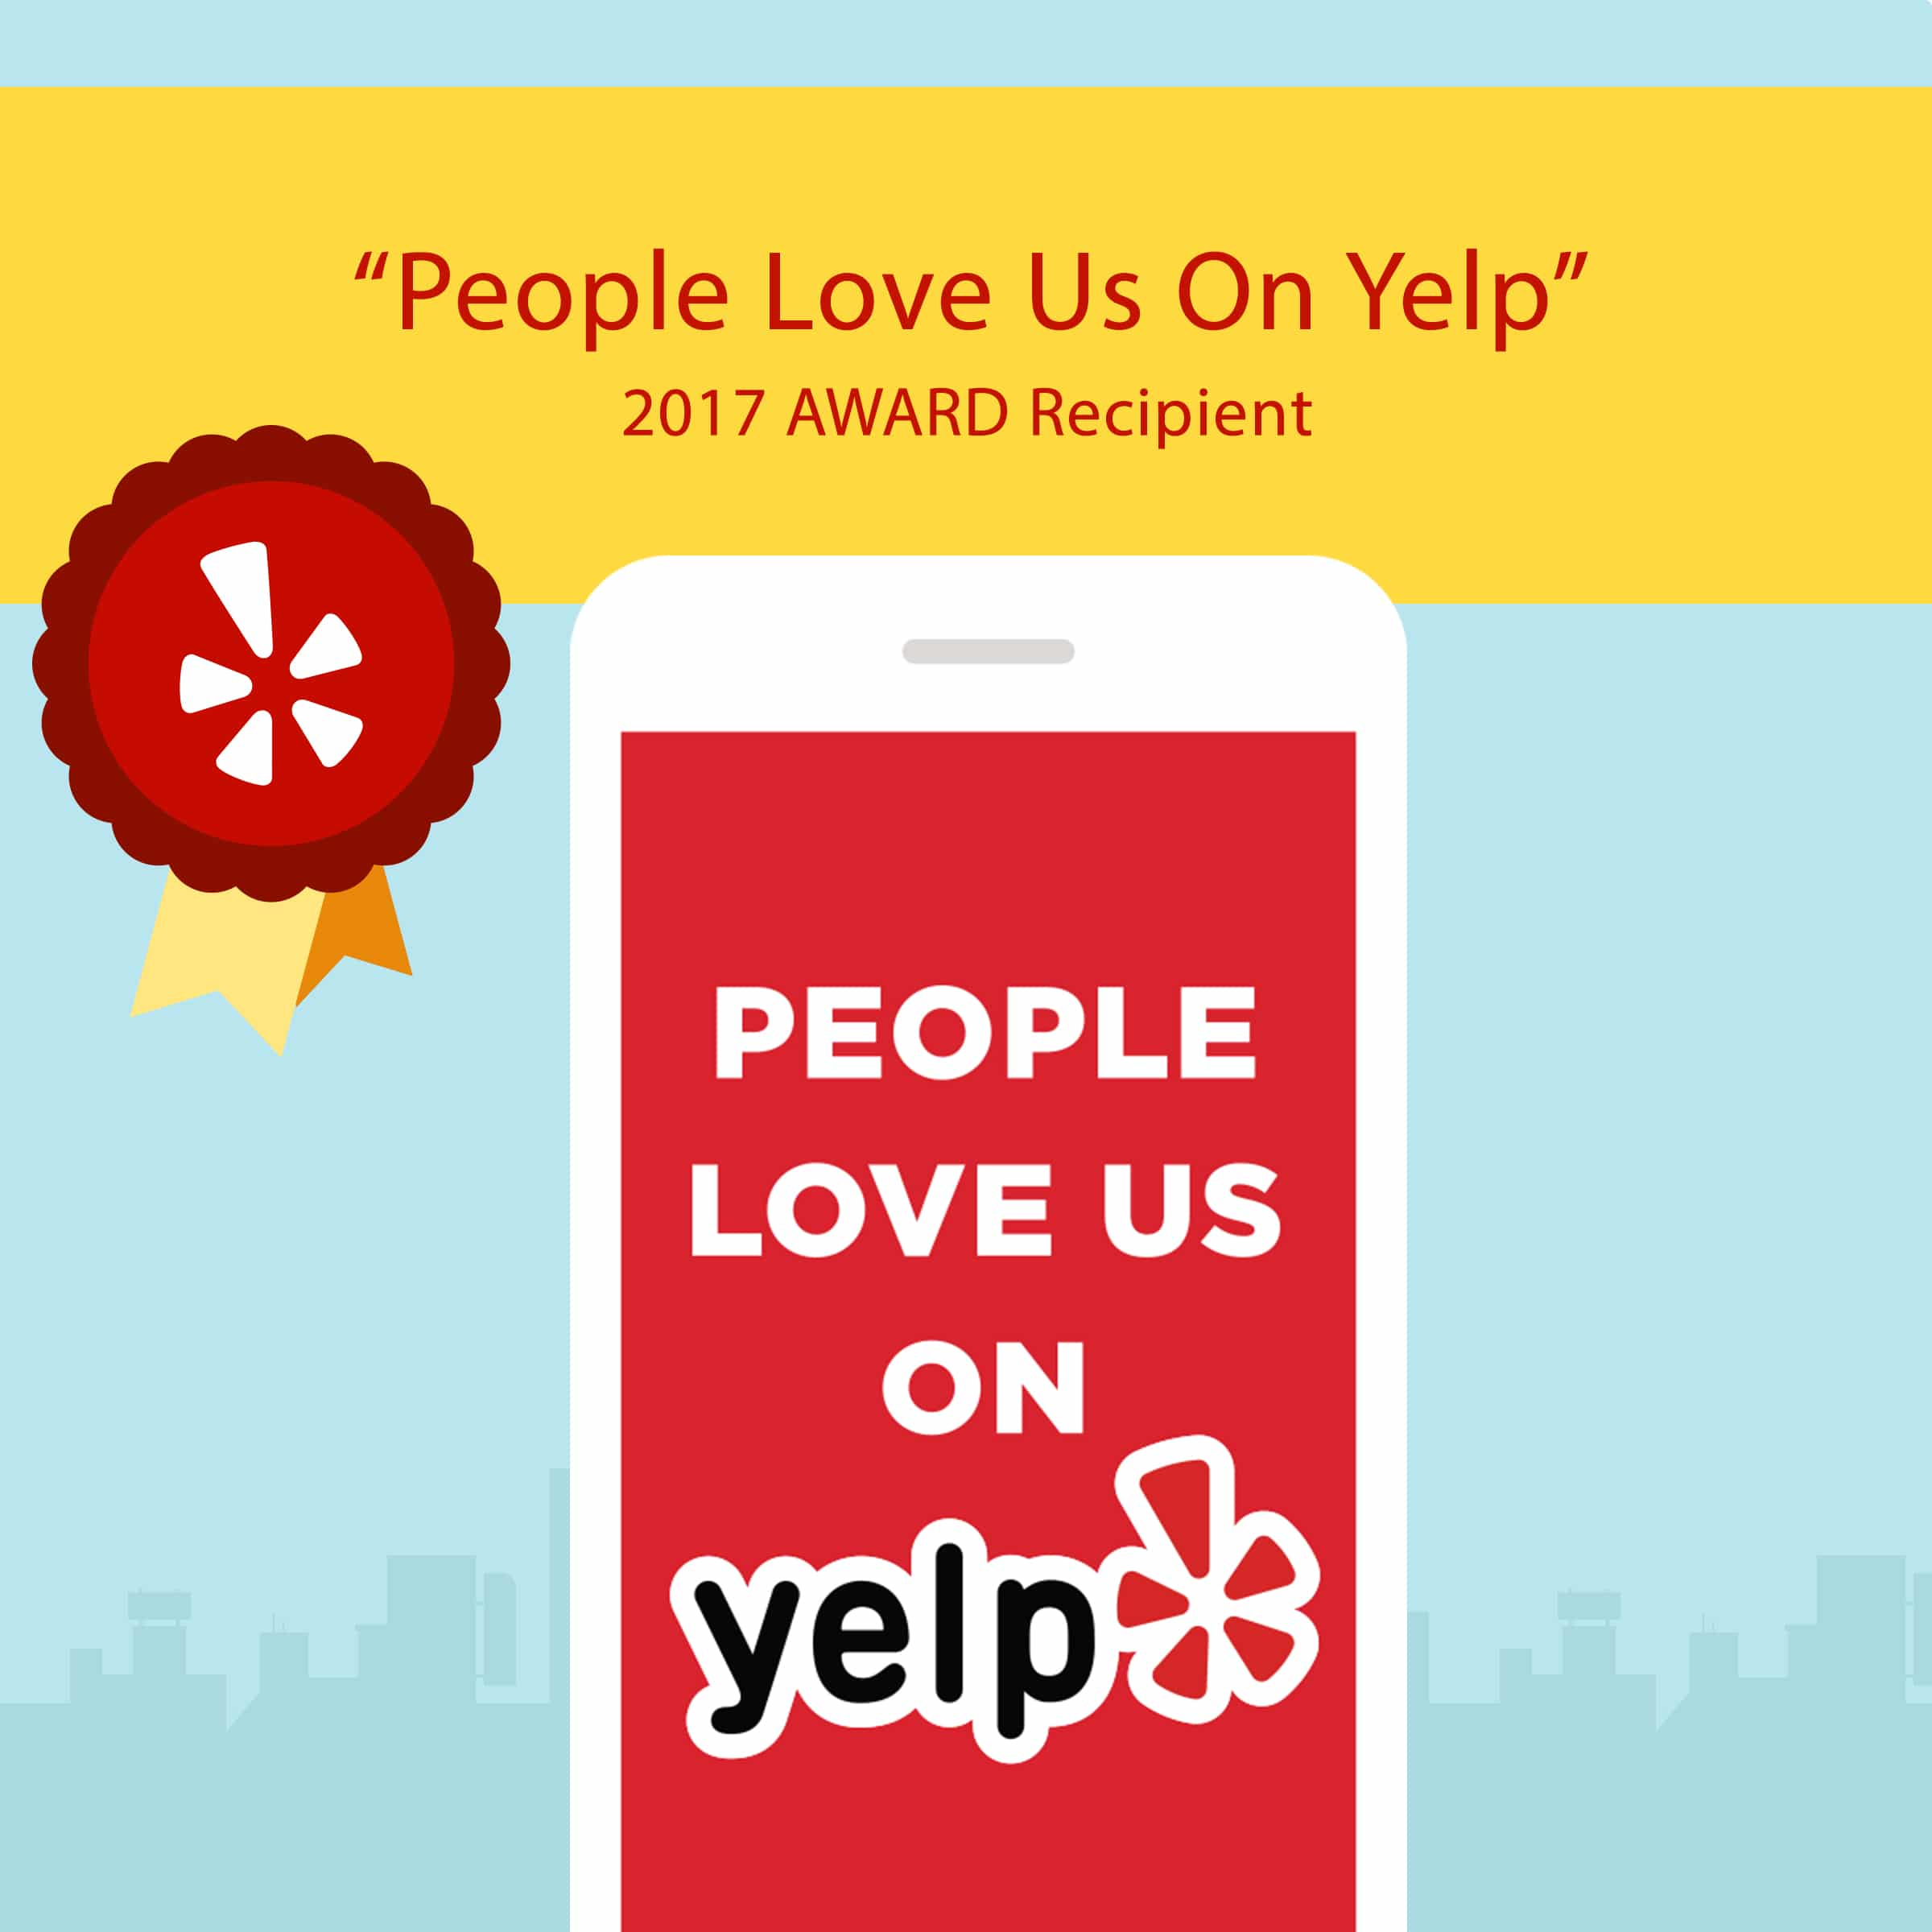 People Love Lifetime Smiles on Yelp! Thank you Yelpers!